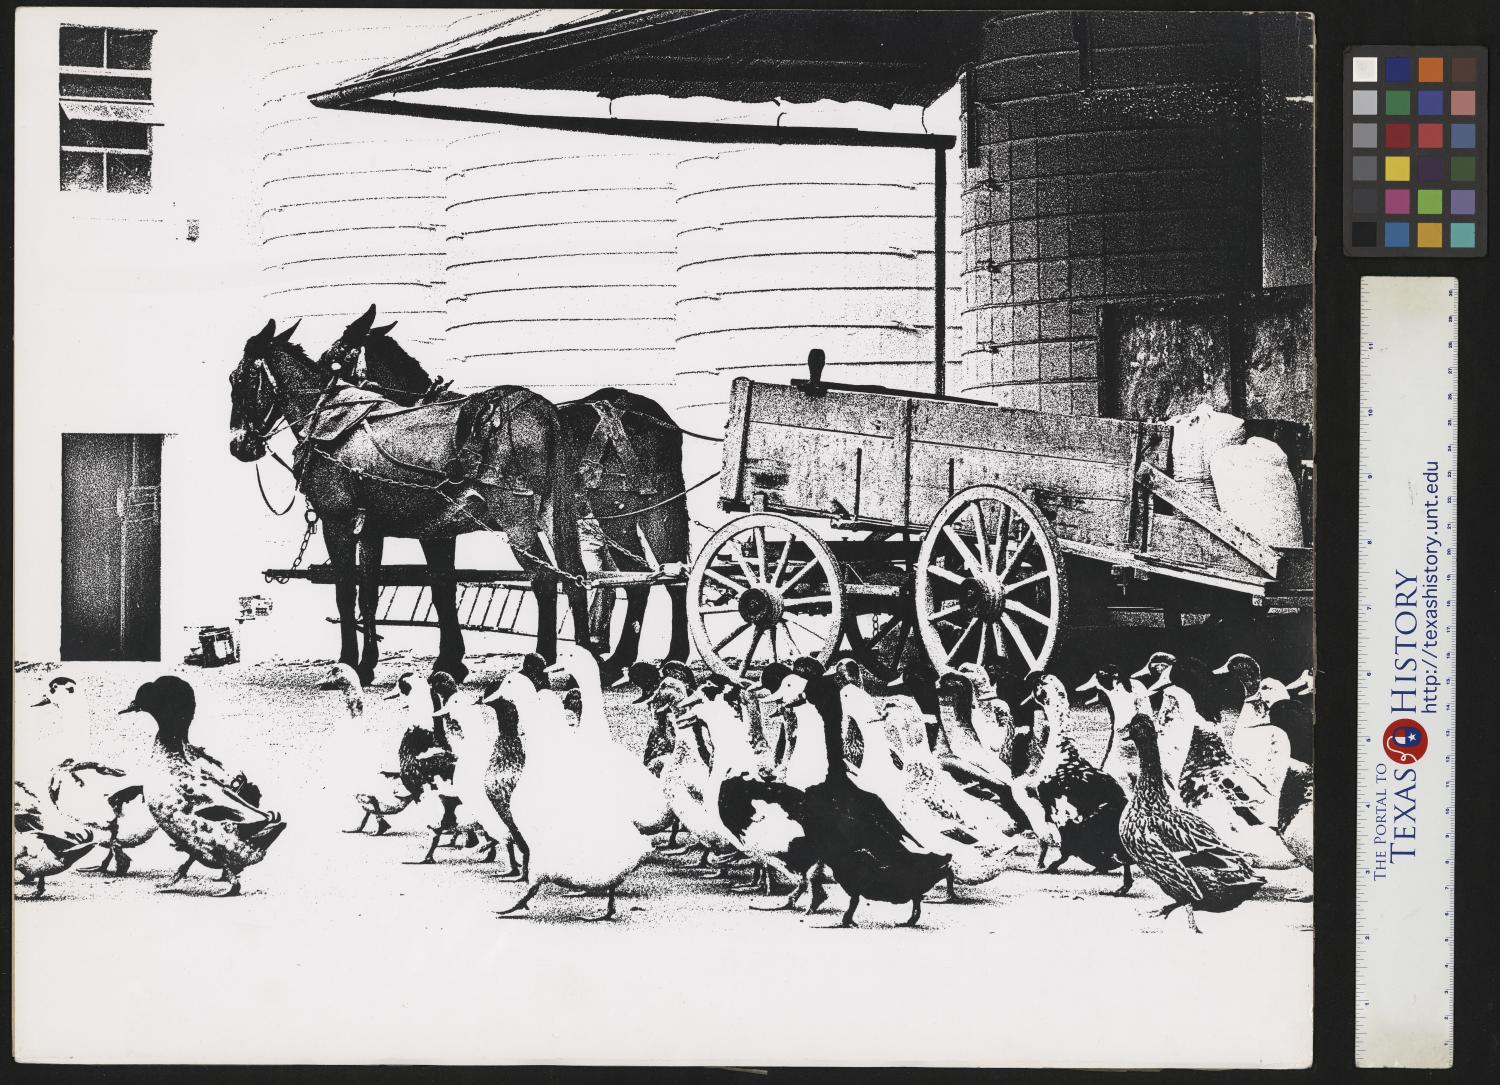 """[Ducks and horse-drawn cart (1)], Photograph of two horses attached to a cart at the base of silos. There is a group of ducks in the foreground. Narrative by Junebug Clark: Corn being delivered to the Jack Daniels Distillery grain silos always attracts a herd of ducks from the nearby creeks and ponds. This print was created using Joes """"Impro"""" technique. A process that drops mid-tones from and image. Photo by: Joe Clark, HBSS. Signed by: Joe Clark, HBSS Clark PhotoFile: 7305-4 impro,"""